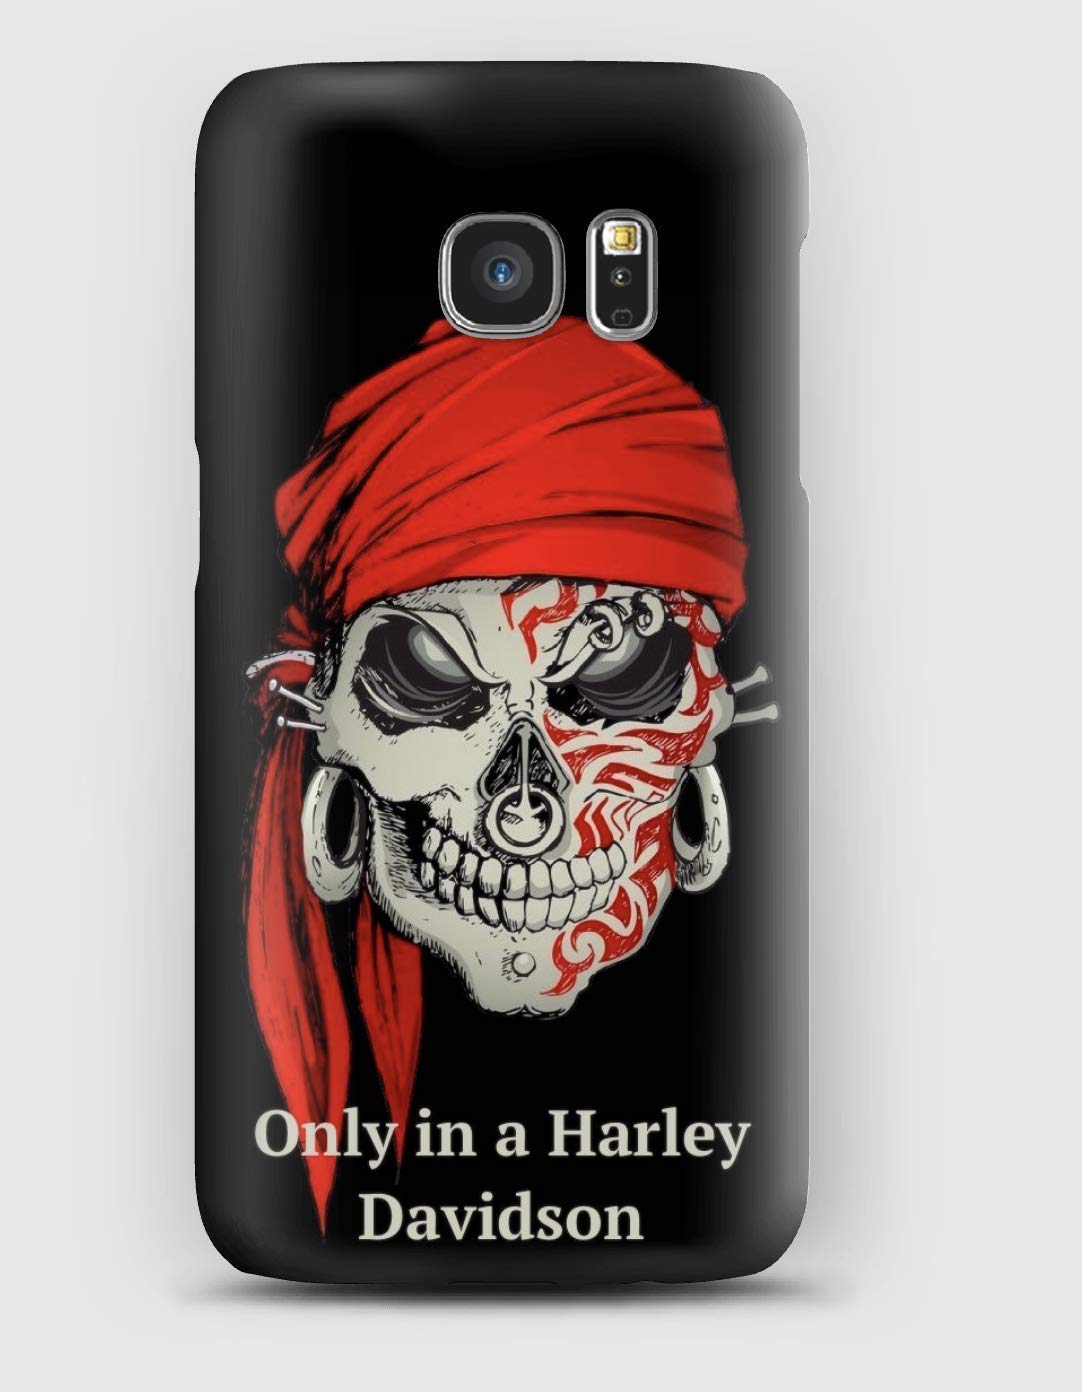 Coque Samsung S5, S6, S7, S8,S9, A3, A5, A7,A8, J3,J5, Note 4,5,8,9, Grand prime, Only in a Harley Davidson …